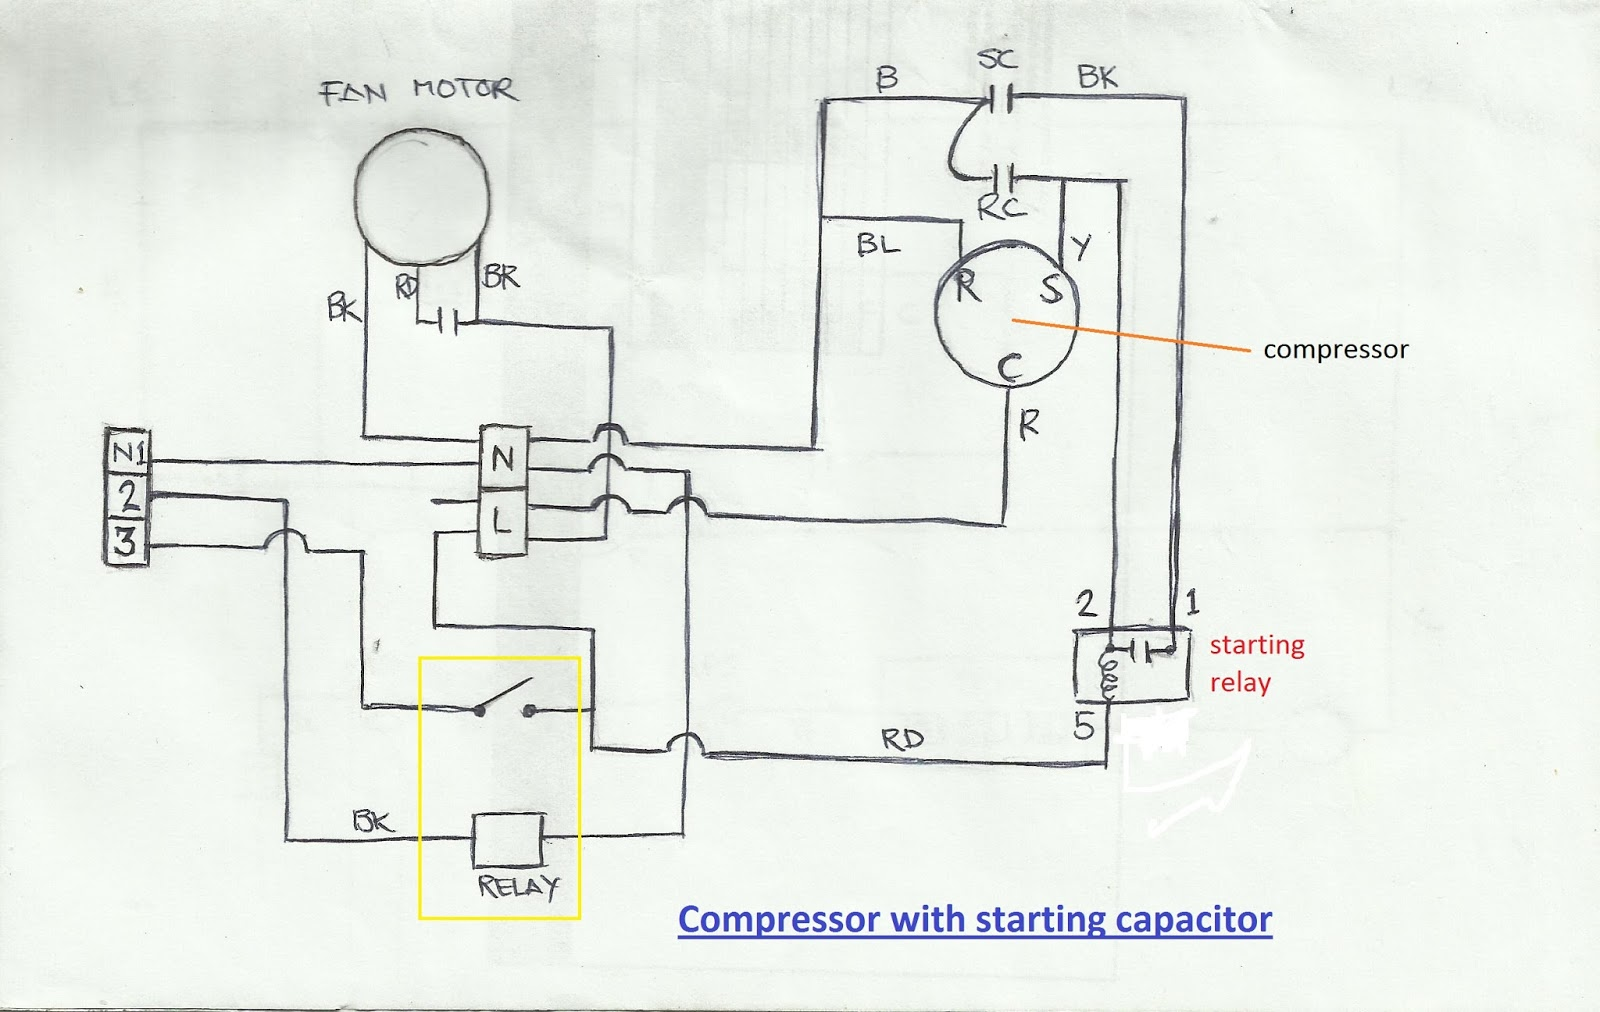 18 refrigeration and air conditioning repair wiring diagram of electrical circuit diagram of air conditioner at crackthecode.co